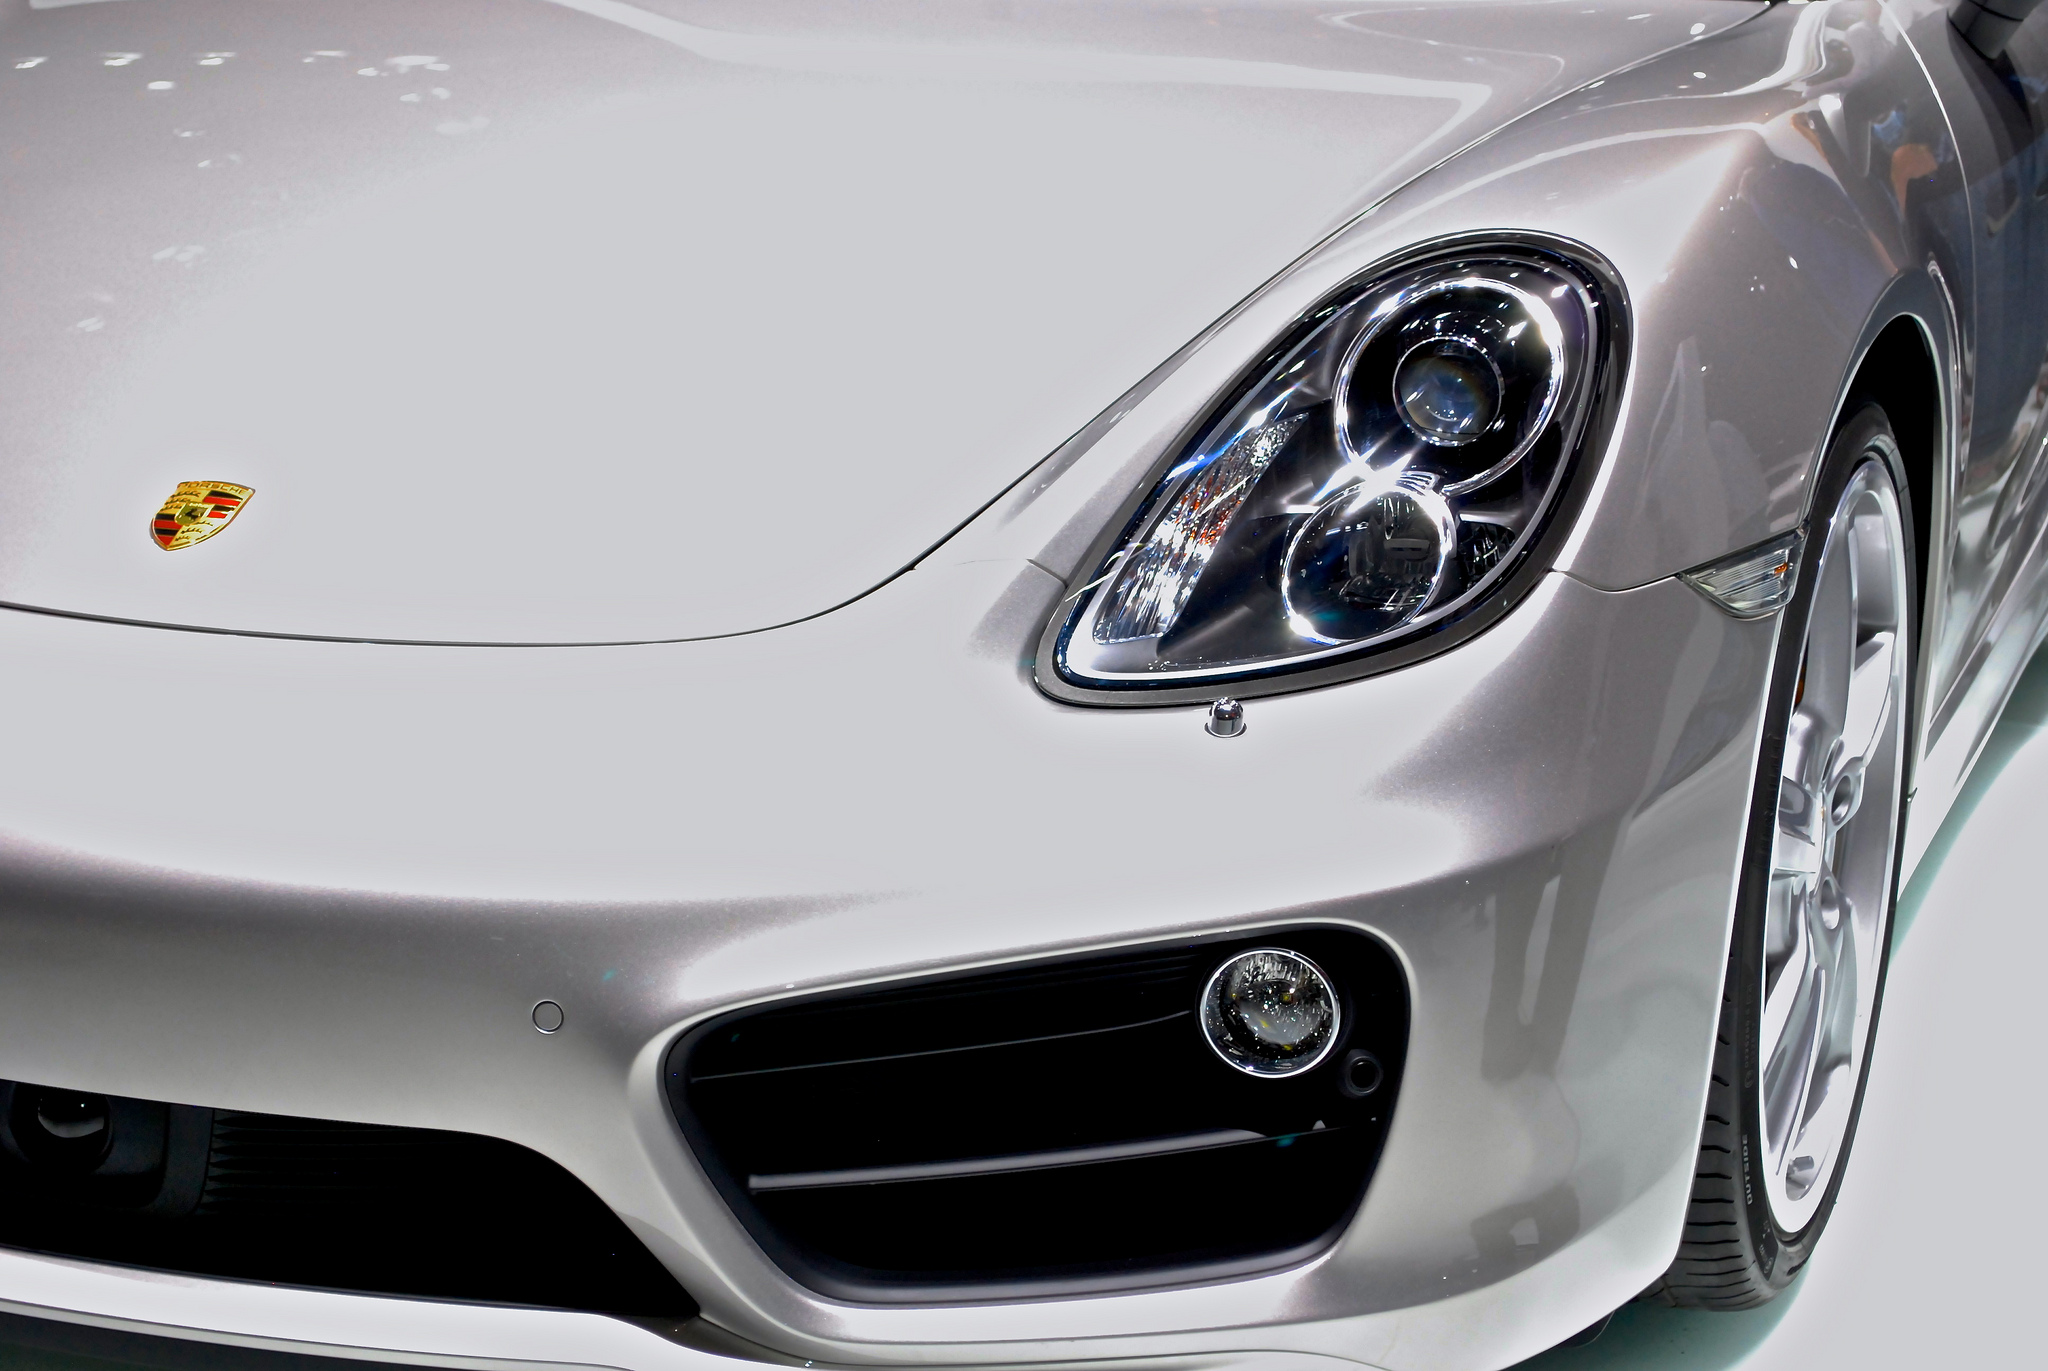 2013 Porsche Cayman at NAIAS 2013 By rbraughler